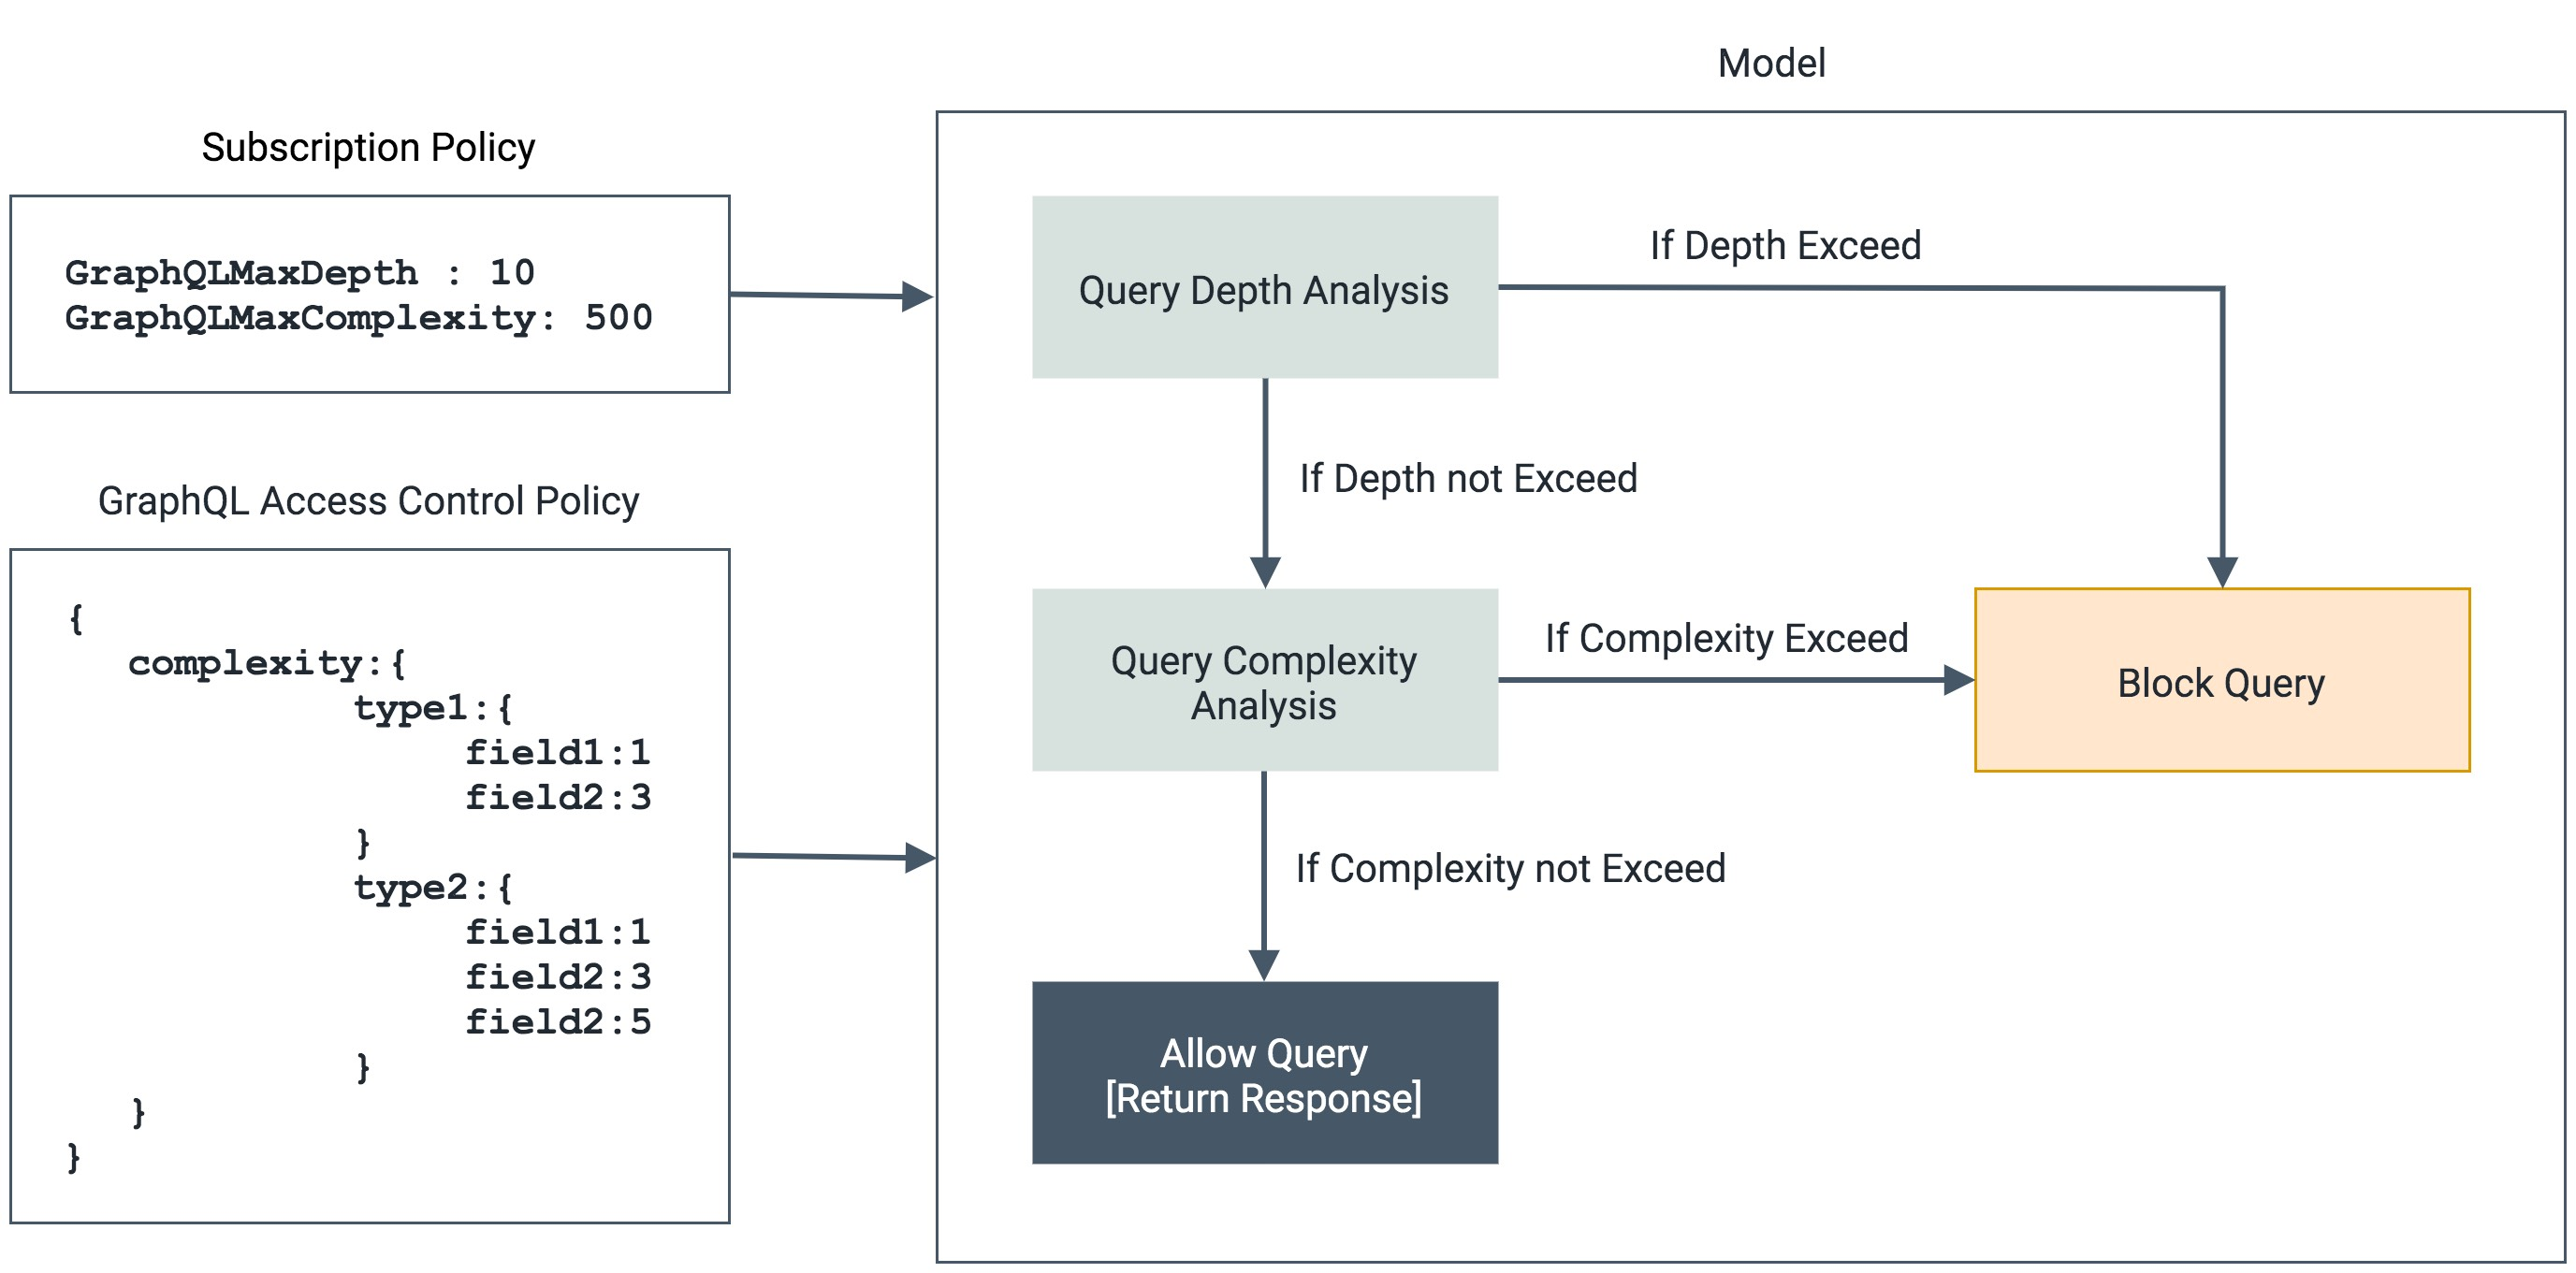 Model of the GraphQL Query Analysis